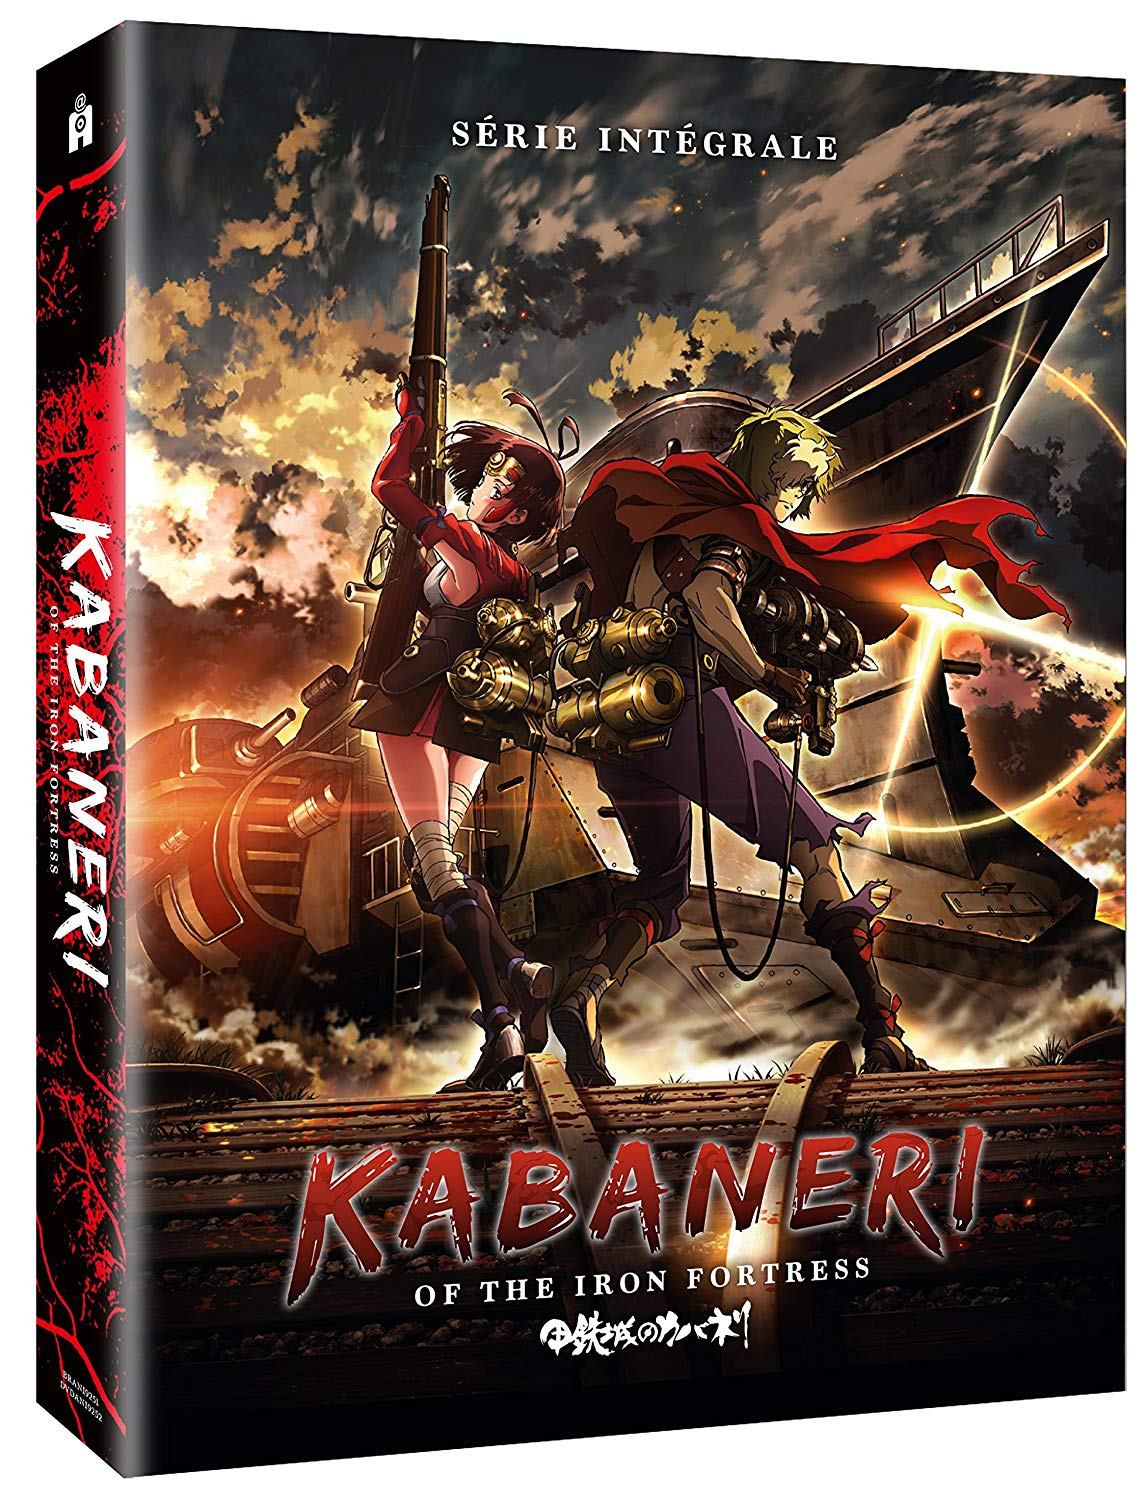 Kabaneri of the iron fortress 1 - Kabaneri of the Iron Fortress - Intégrale - Edition limité Collector DVD